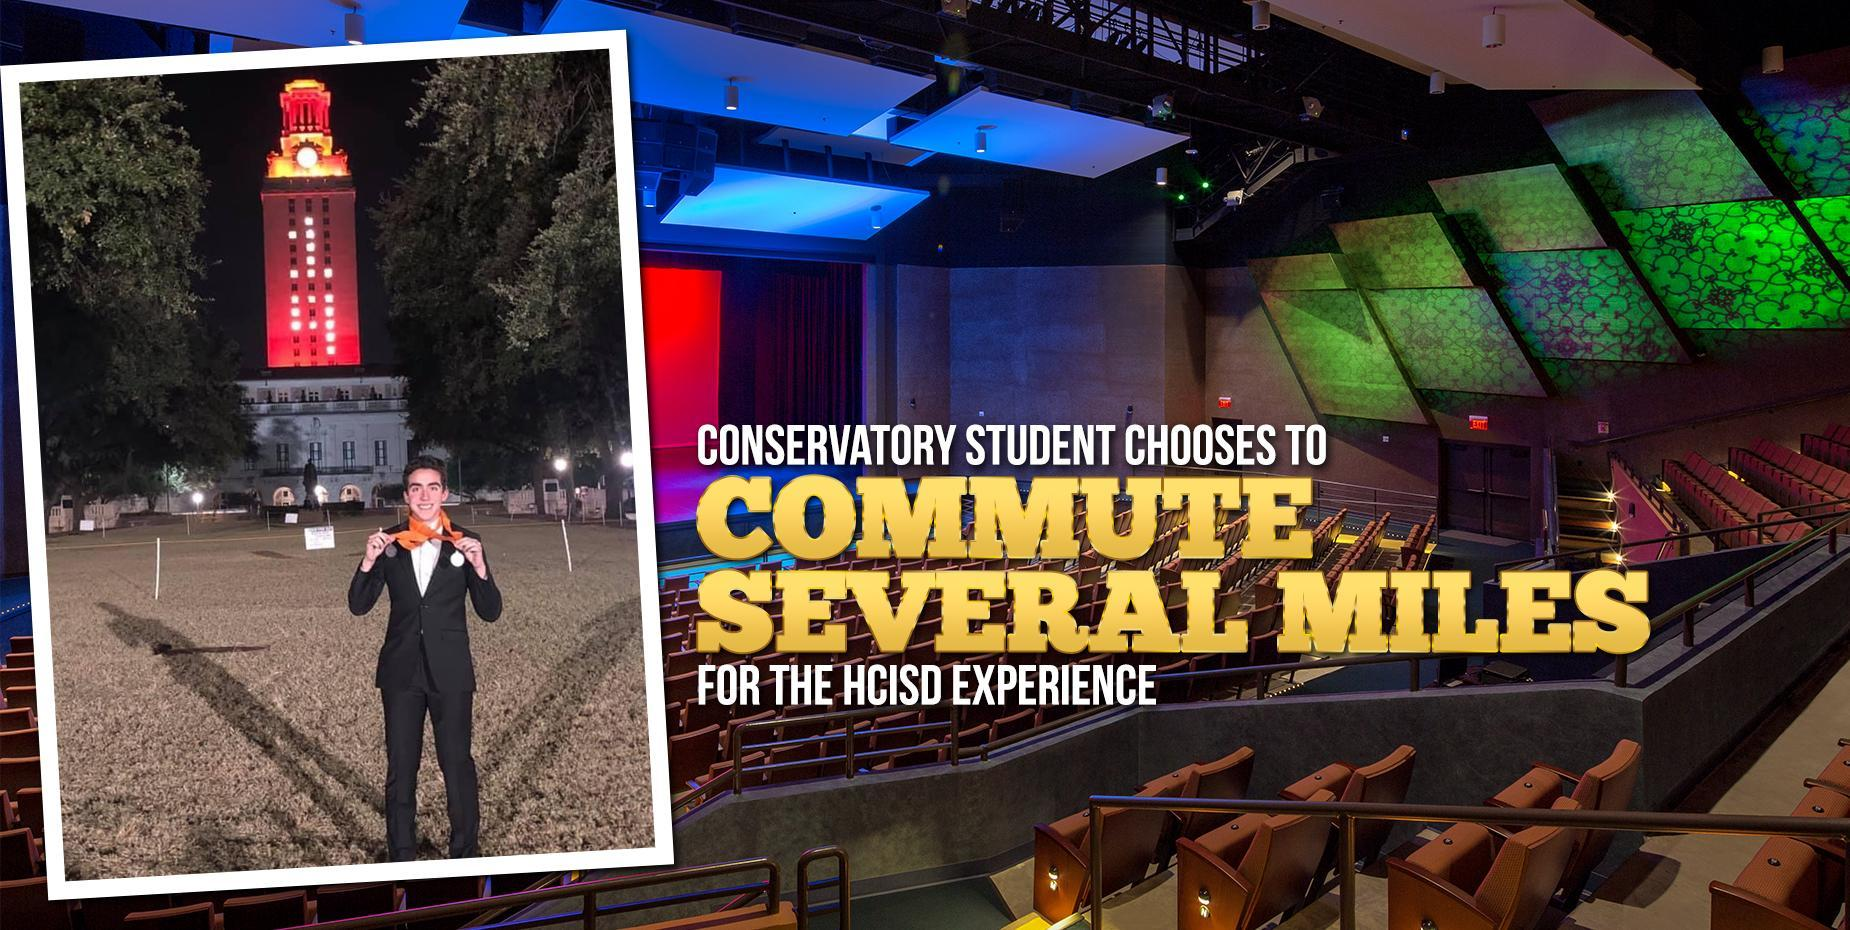 Conservatory student chooses to commute several miles for the HCISD experience